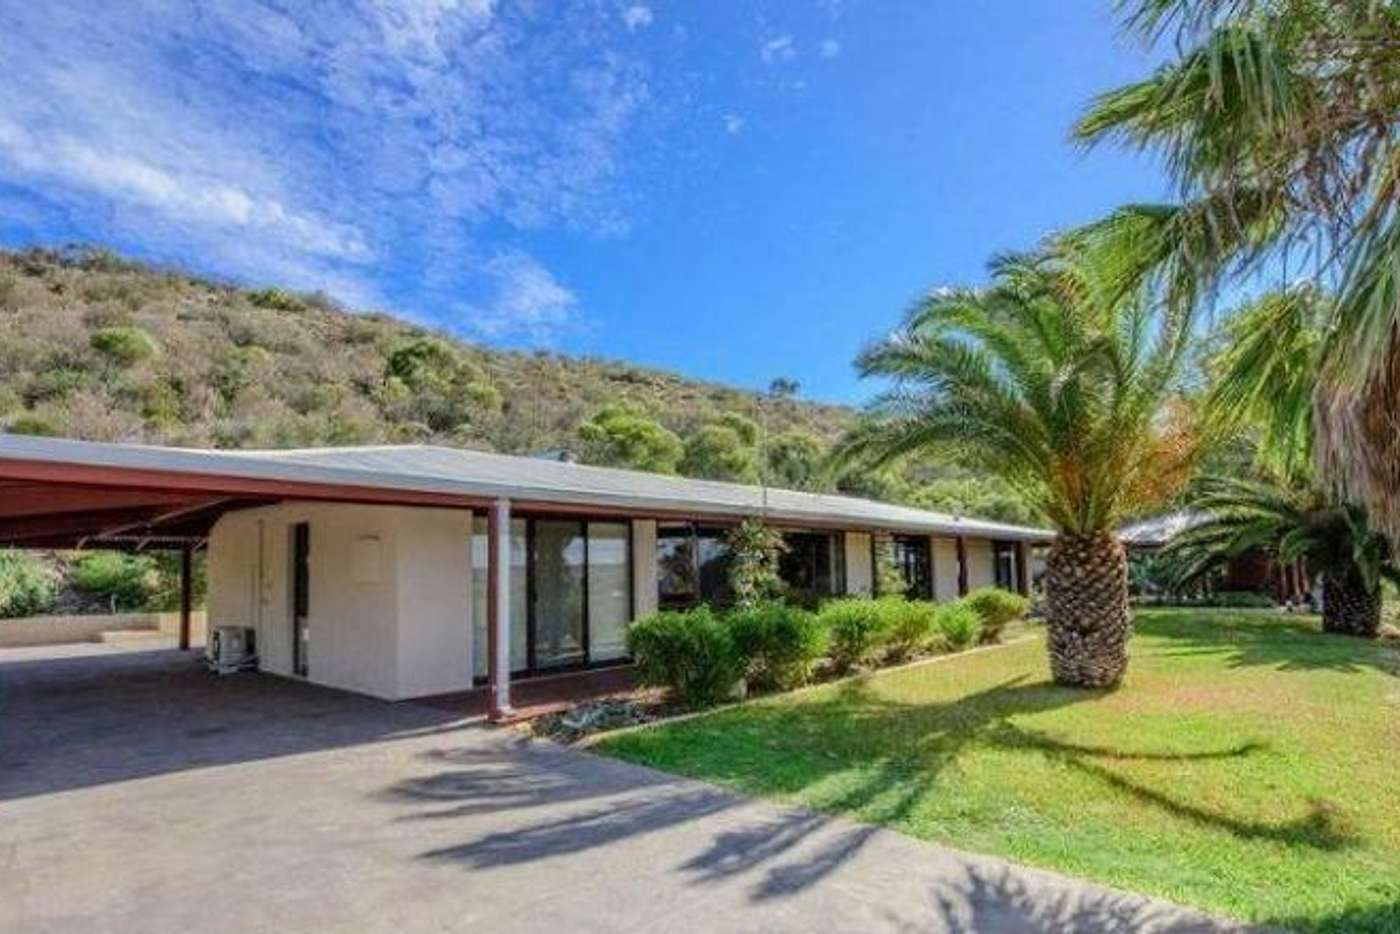 Main view of Homely house listing, 1443 Company Road, Greenough WA 6532